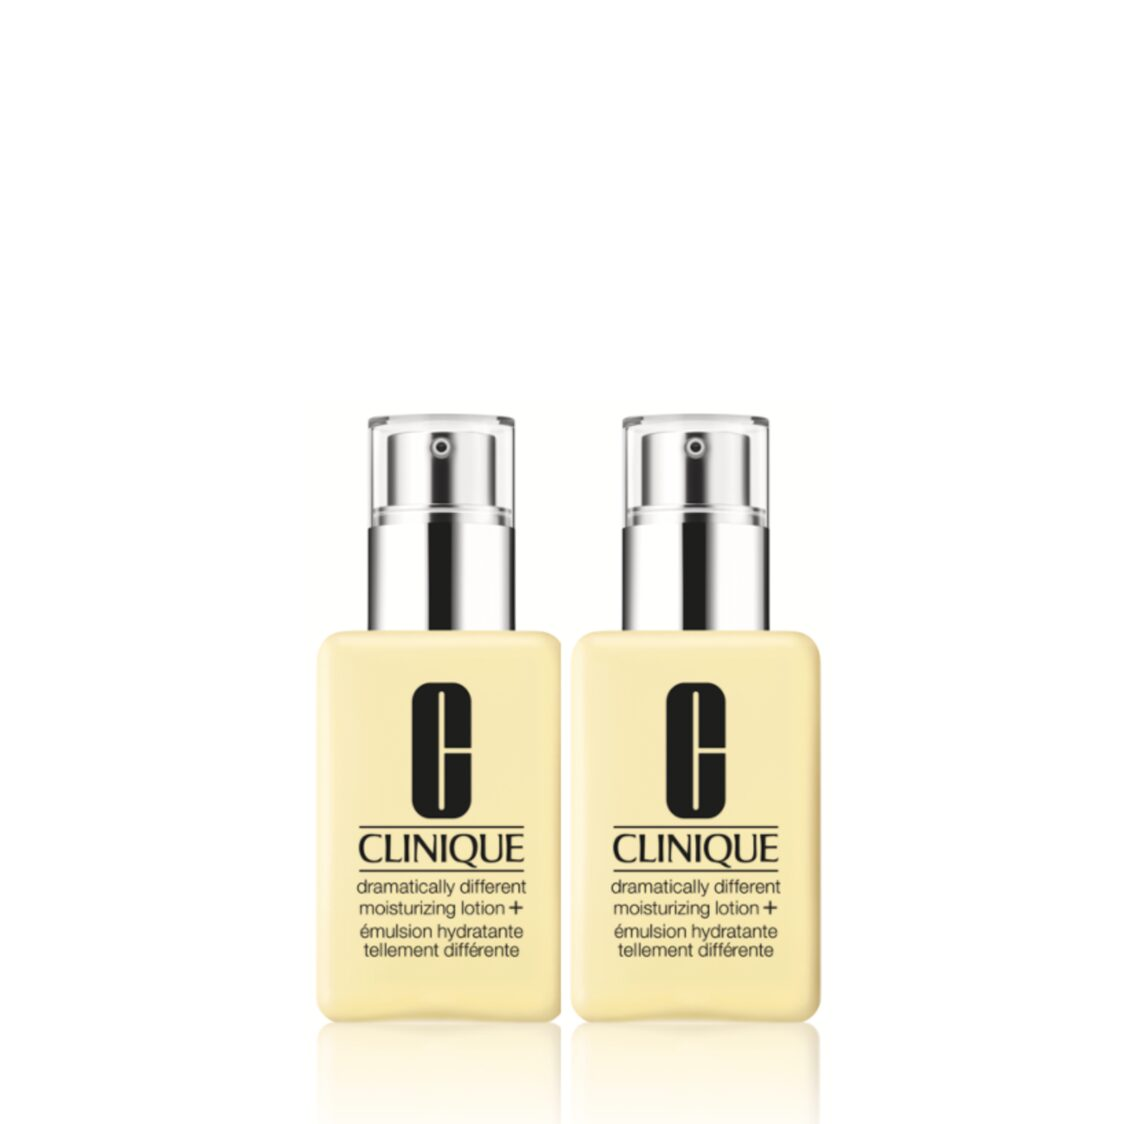 Clinique Dramatically Different Moisturizing Lotion Duo worth 120